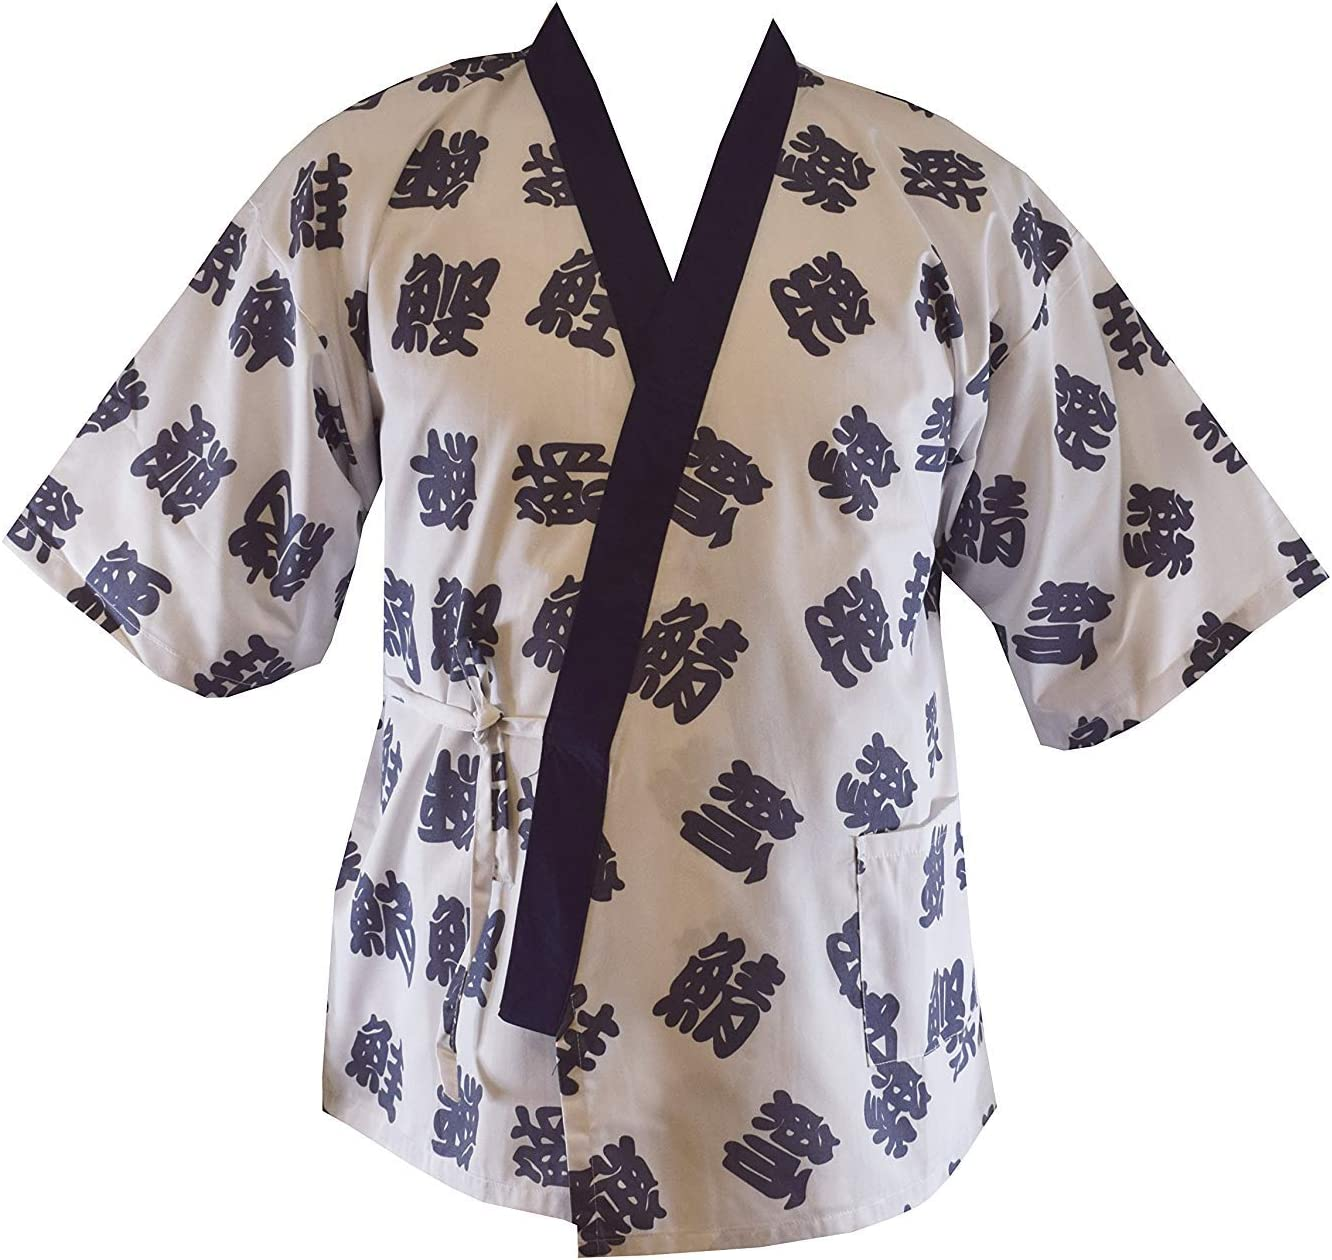 M Size Sushi Chef Jacket Sales for sale Spring new work one after another Black with Headba Japanese Uniform